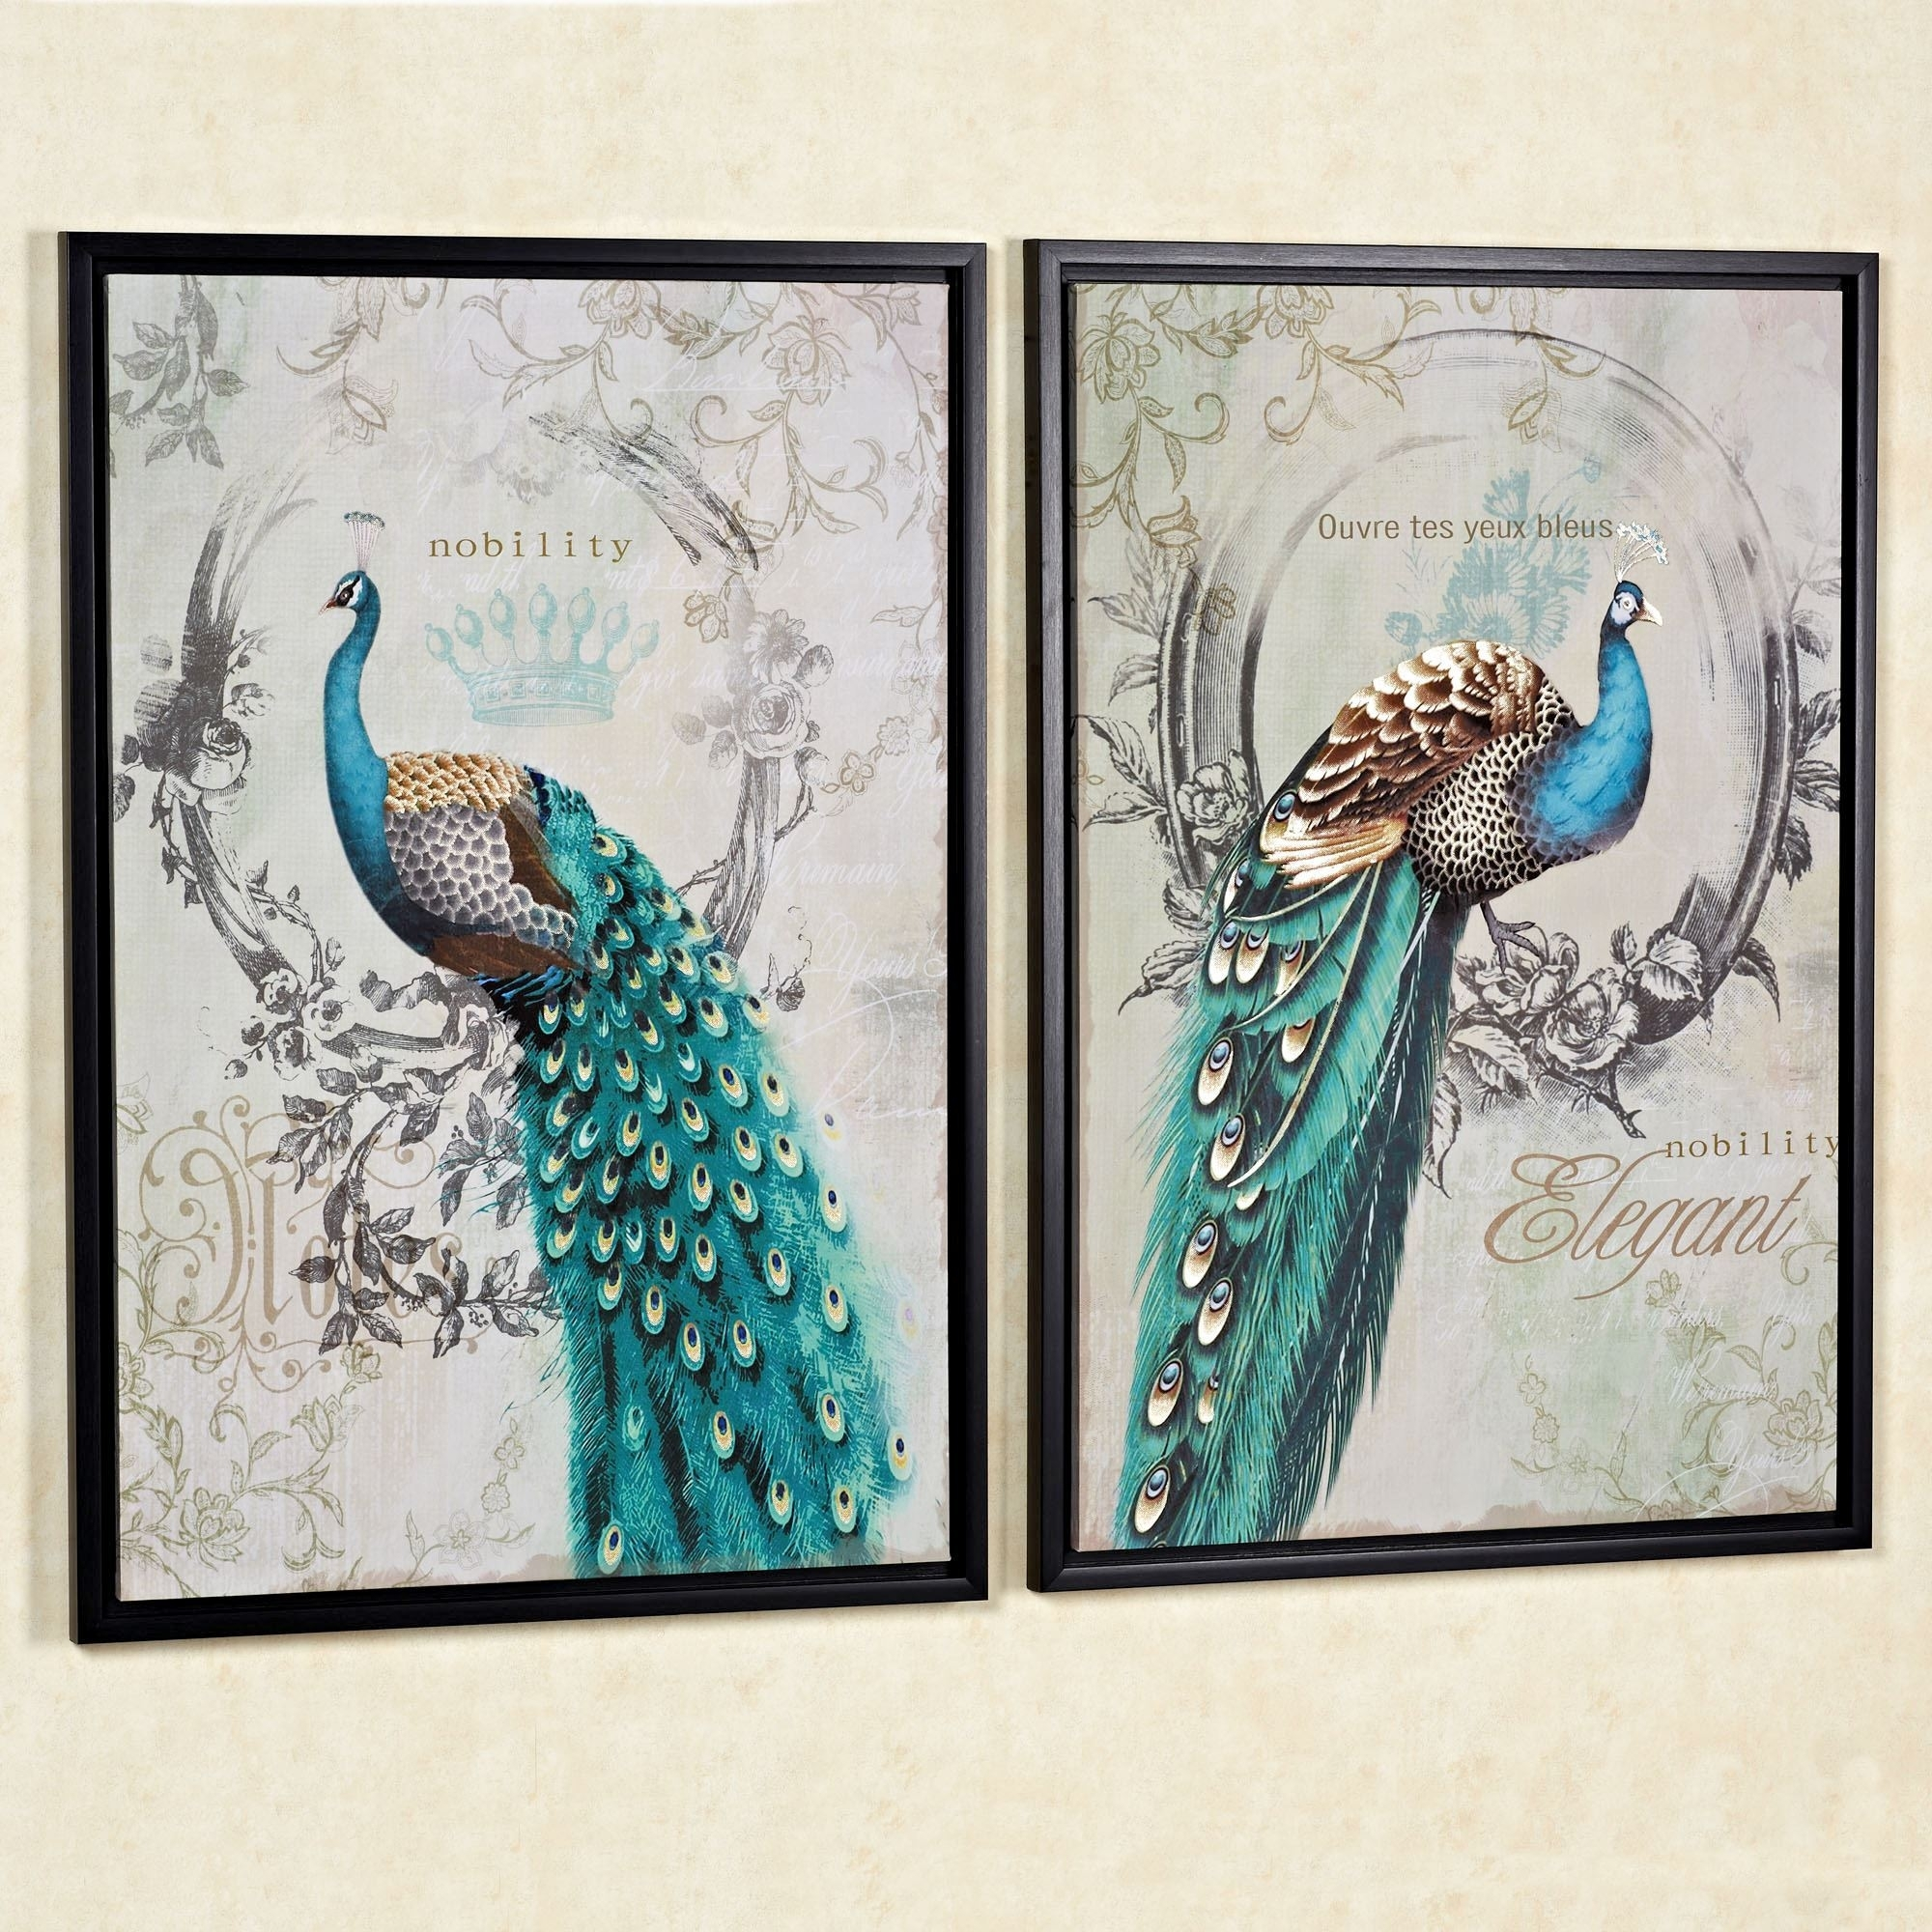 Framed Artwork For Bathroom, Pier One Peacock Wall Art Peacock Regarding 2017 Pier One Abstract Wall Art (View 10 of 20)